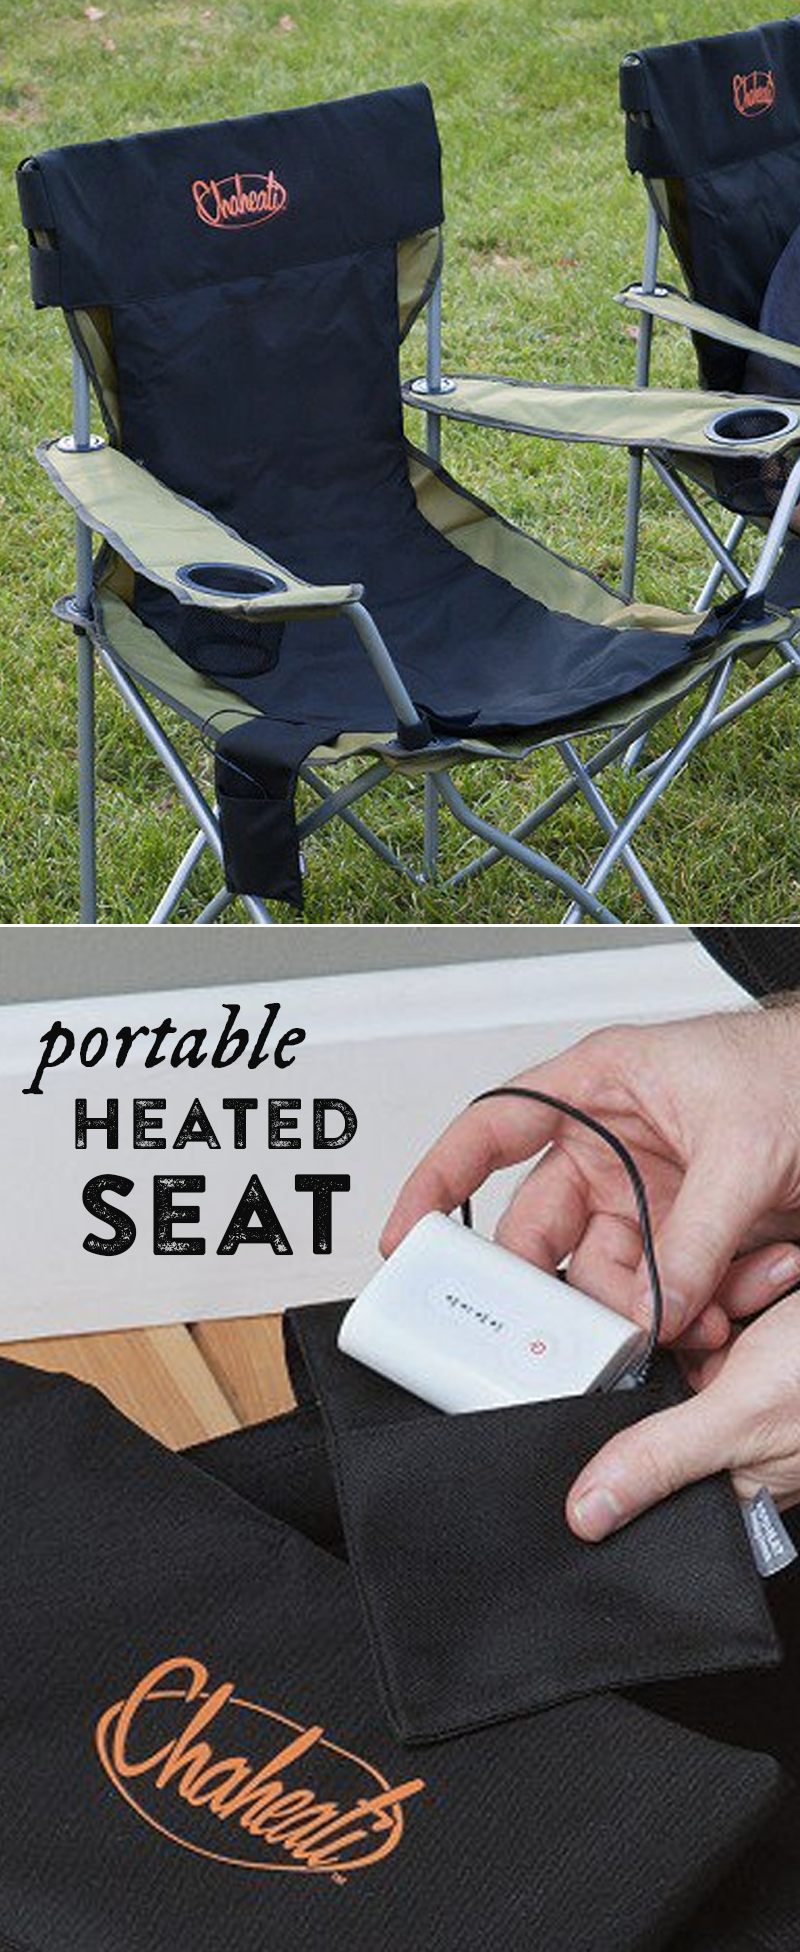 The Chaheati Heated Seat Pad Makes Any Seat A Heated One